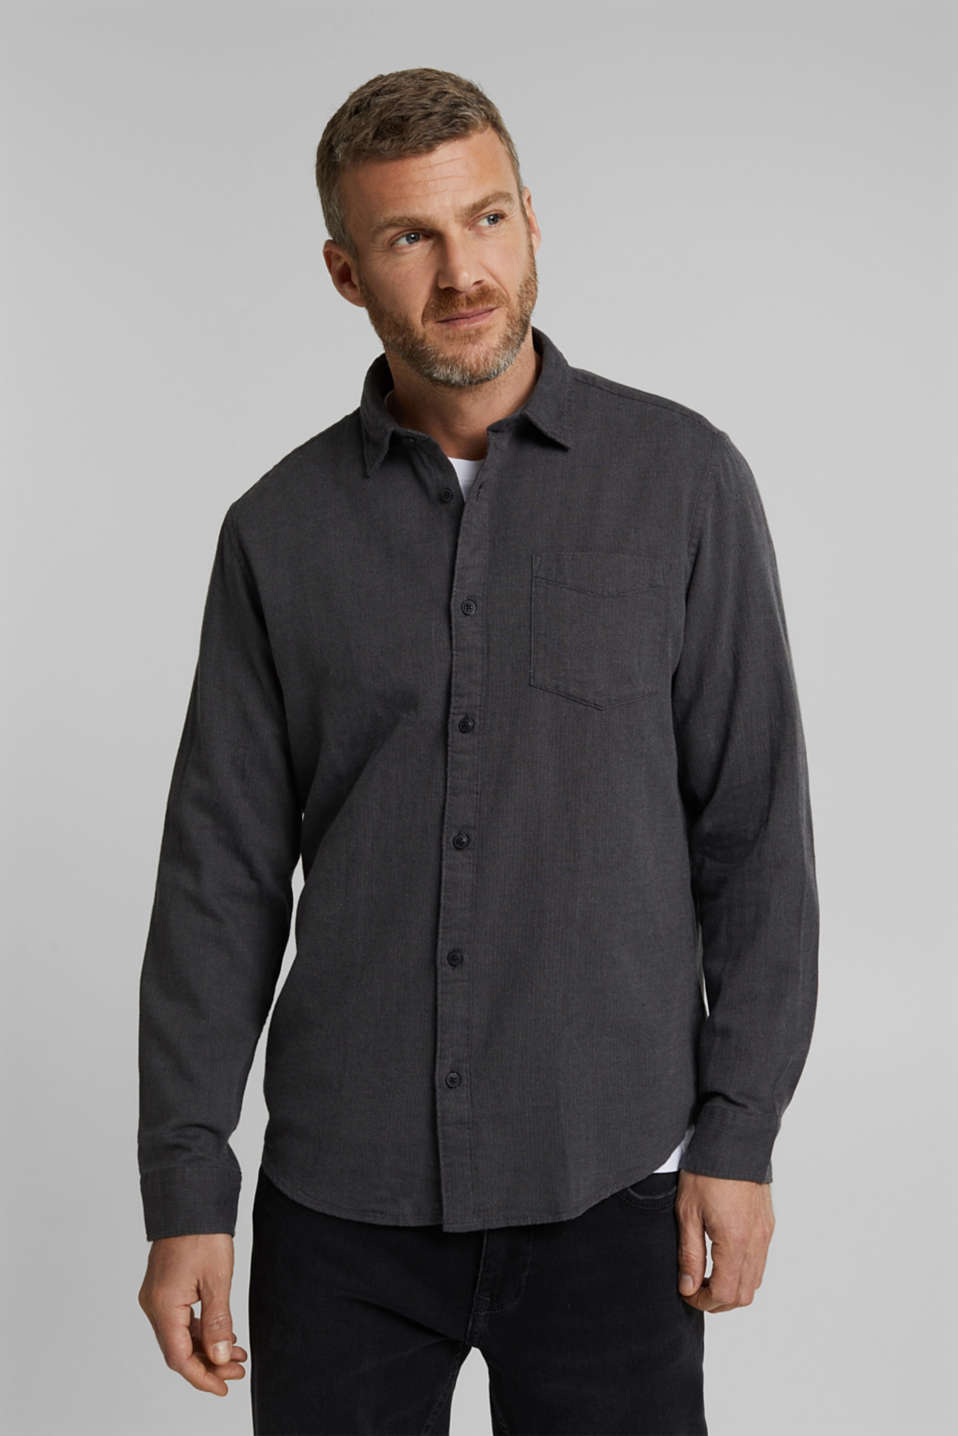 Esprit - Brushed herringbone pattern shirt, 100% organic cotton